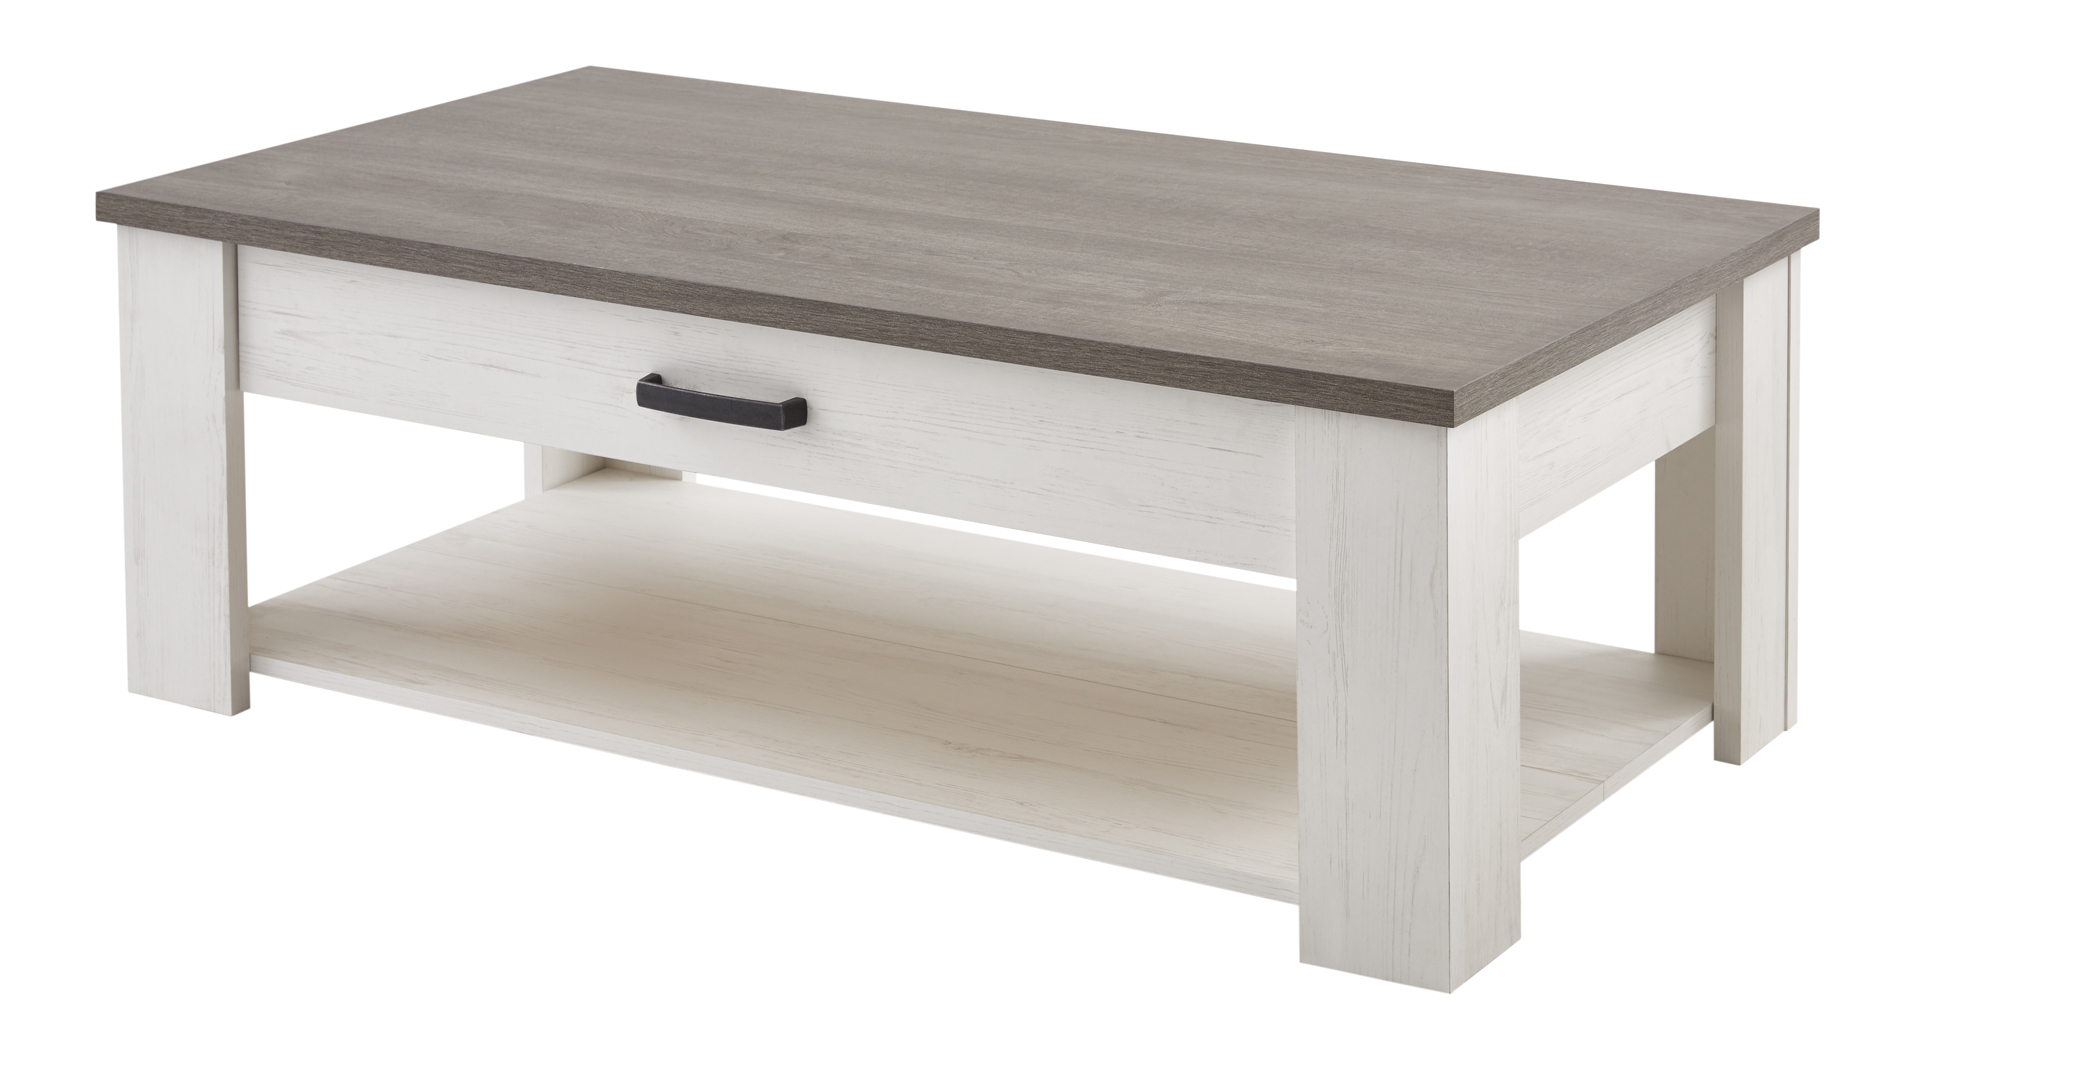 Table basse contemporaine blanc/marron Rubio